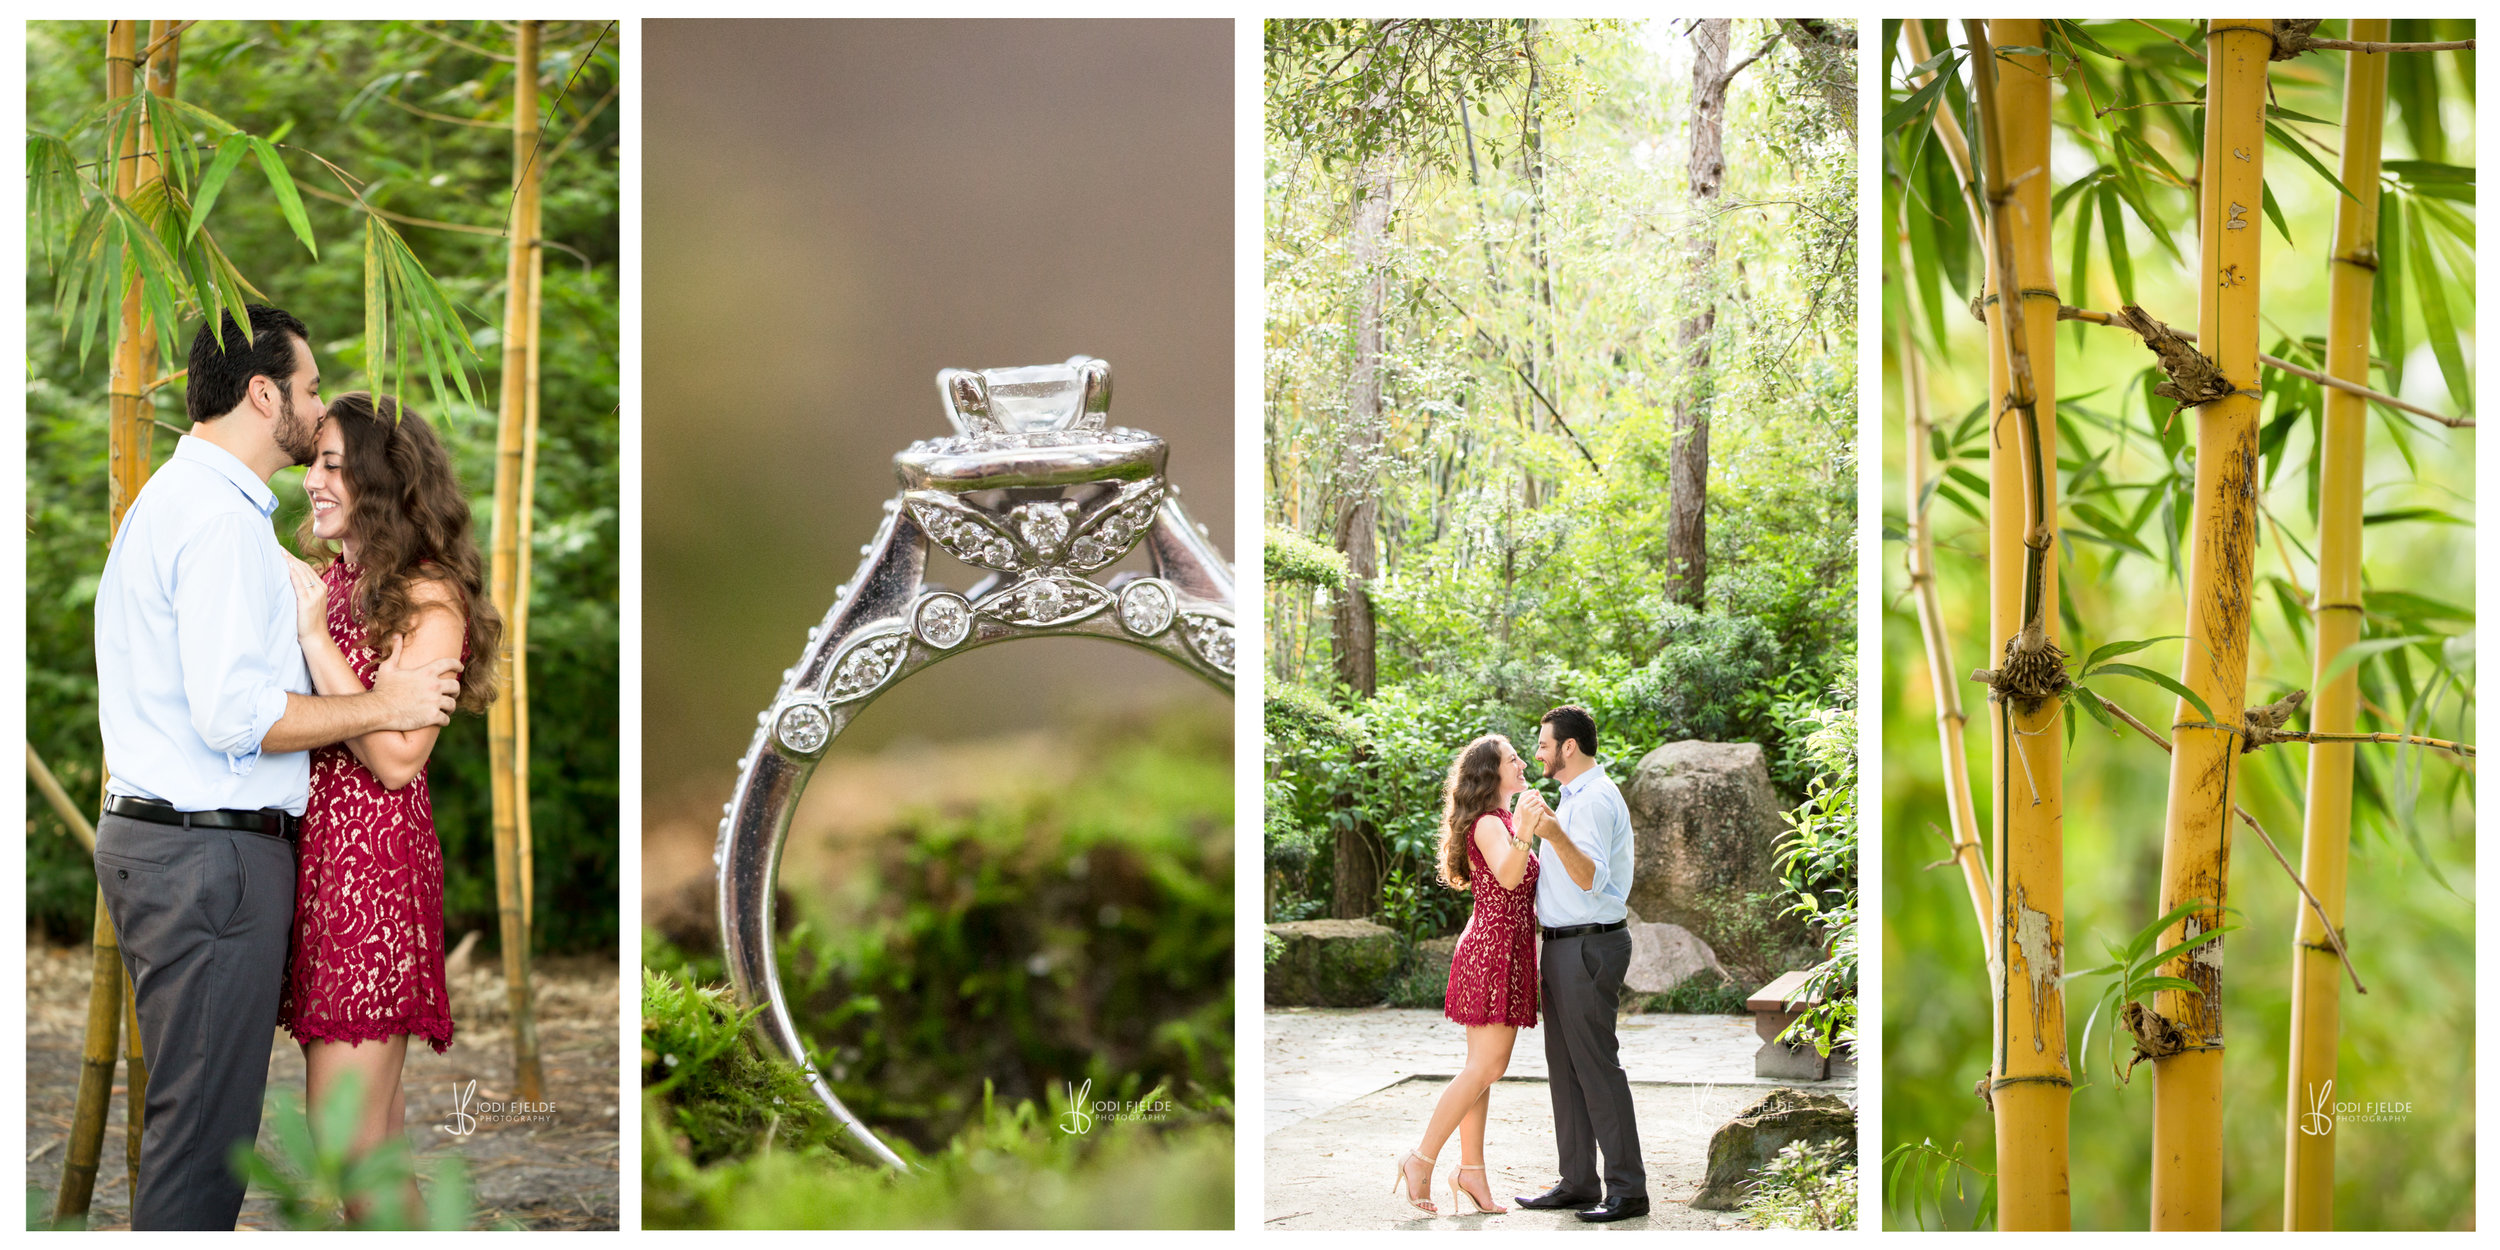 Morikami_Museum_Gardens_Delray_Beach_Engagement_Heather_and Doug_2.jpg